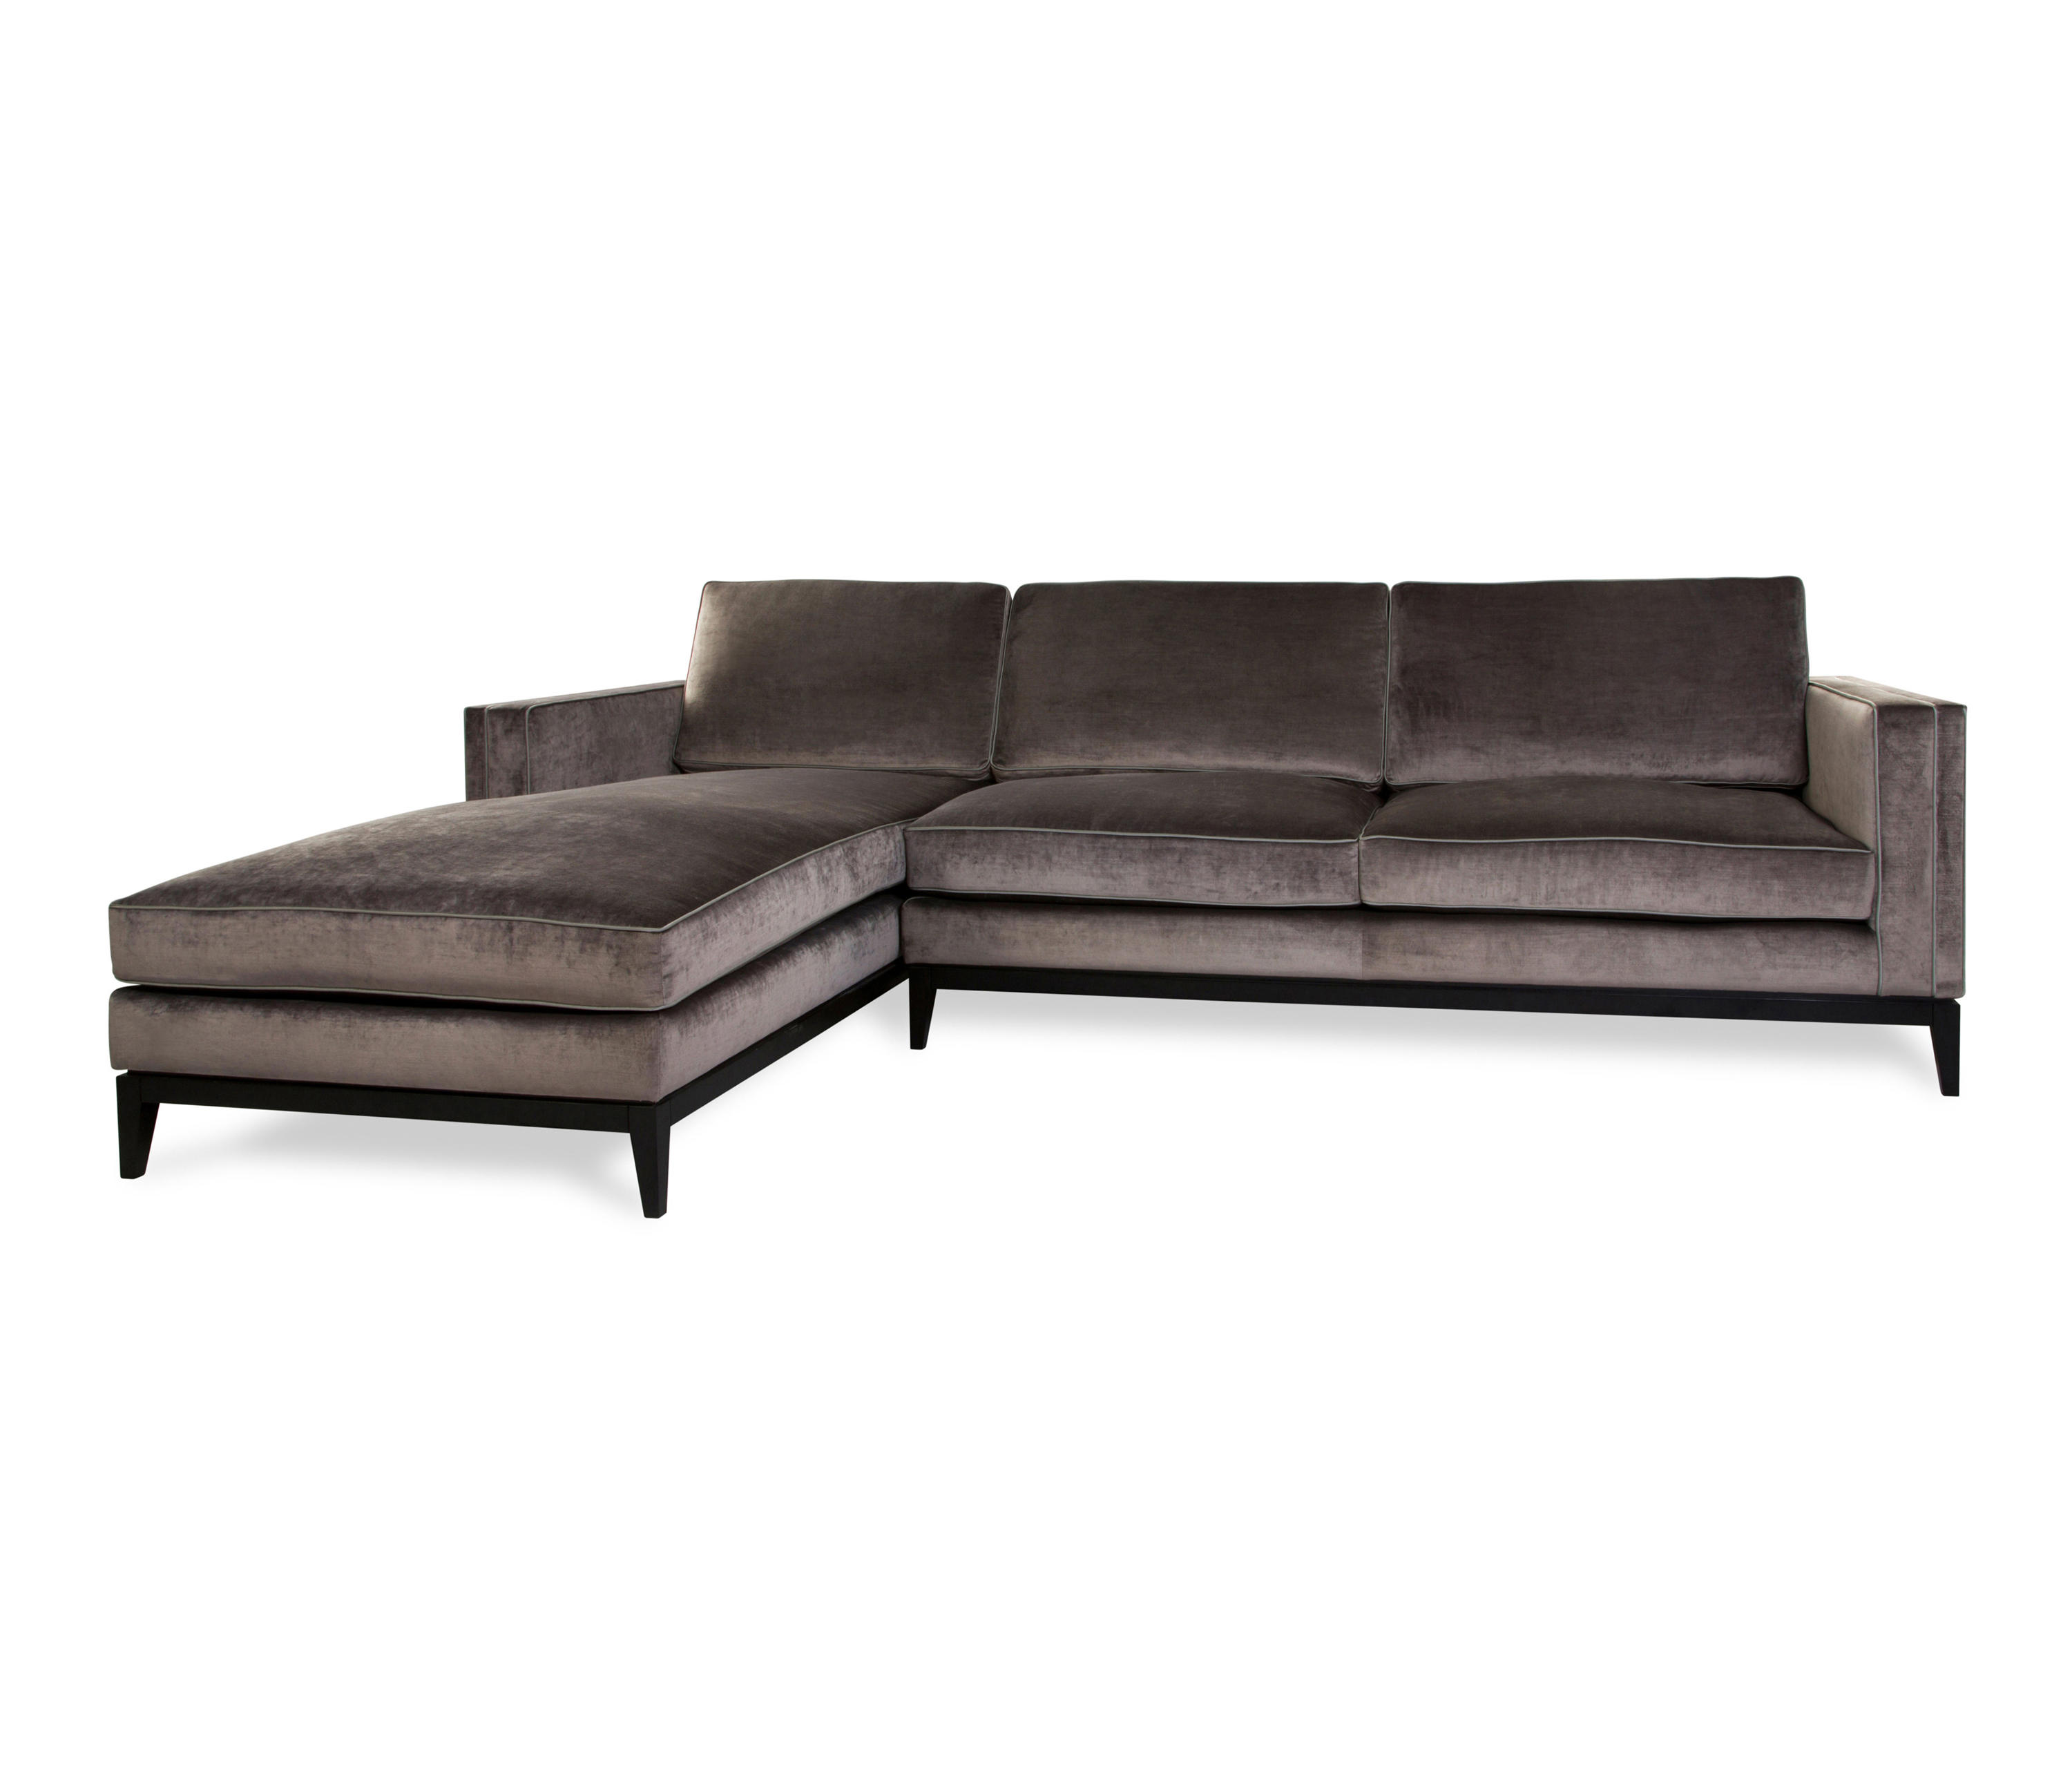 Hockney Deluxe Corner Sofa By The Chair Company Ltd Sofas